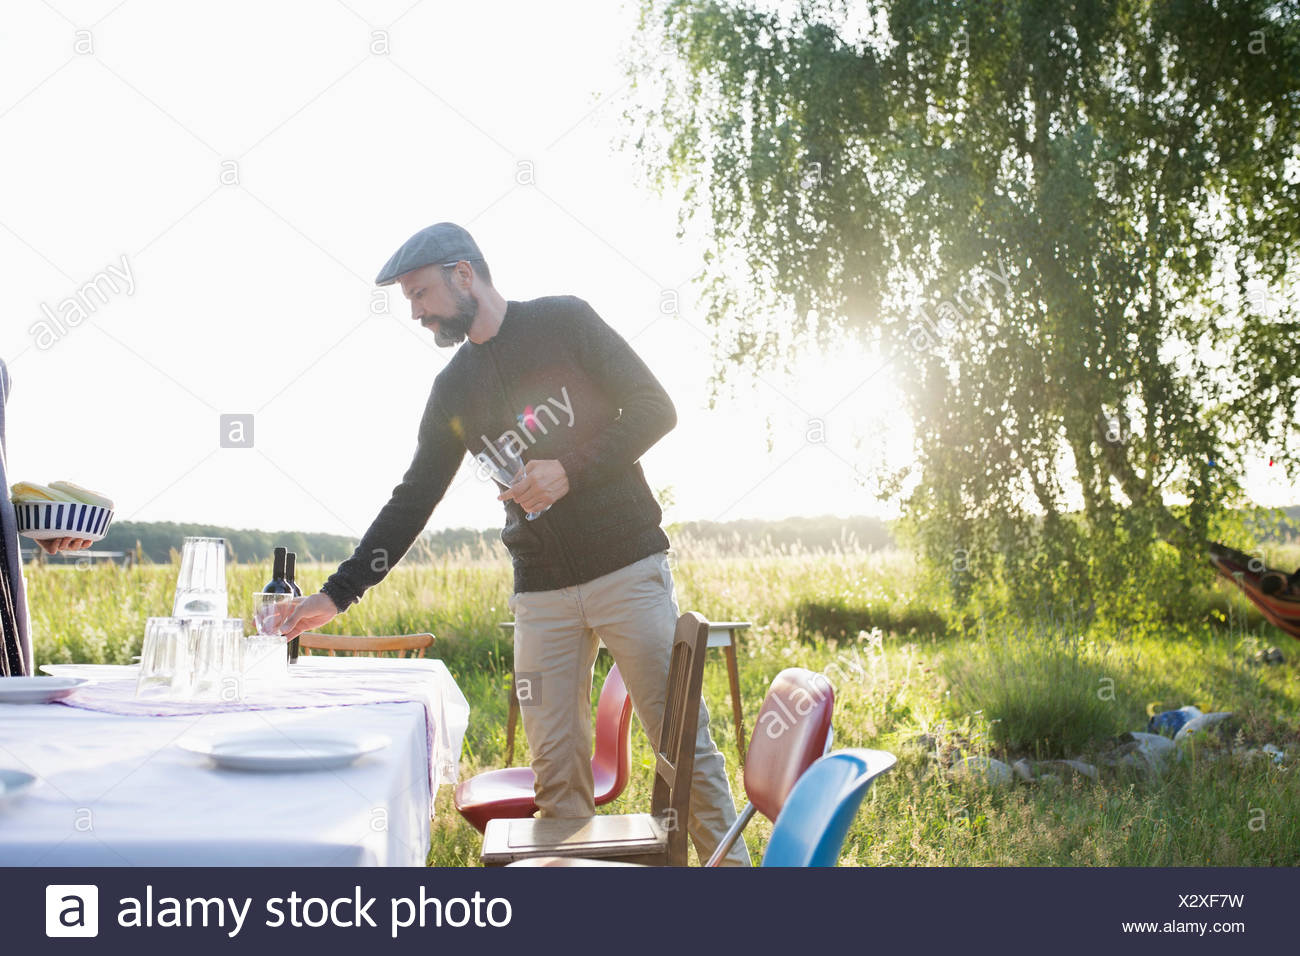 Man setting the table for garden party dinner in sunny summer rural yard - Stock Image